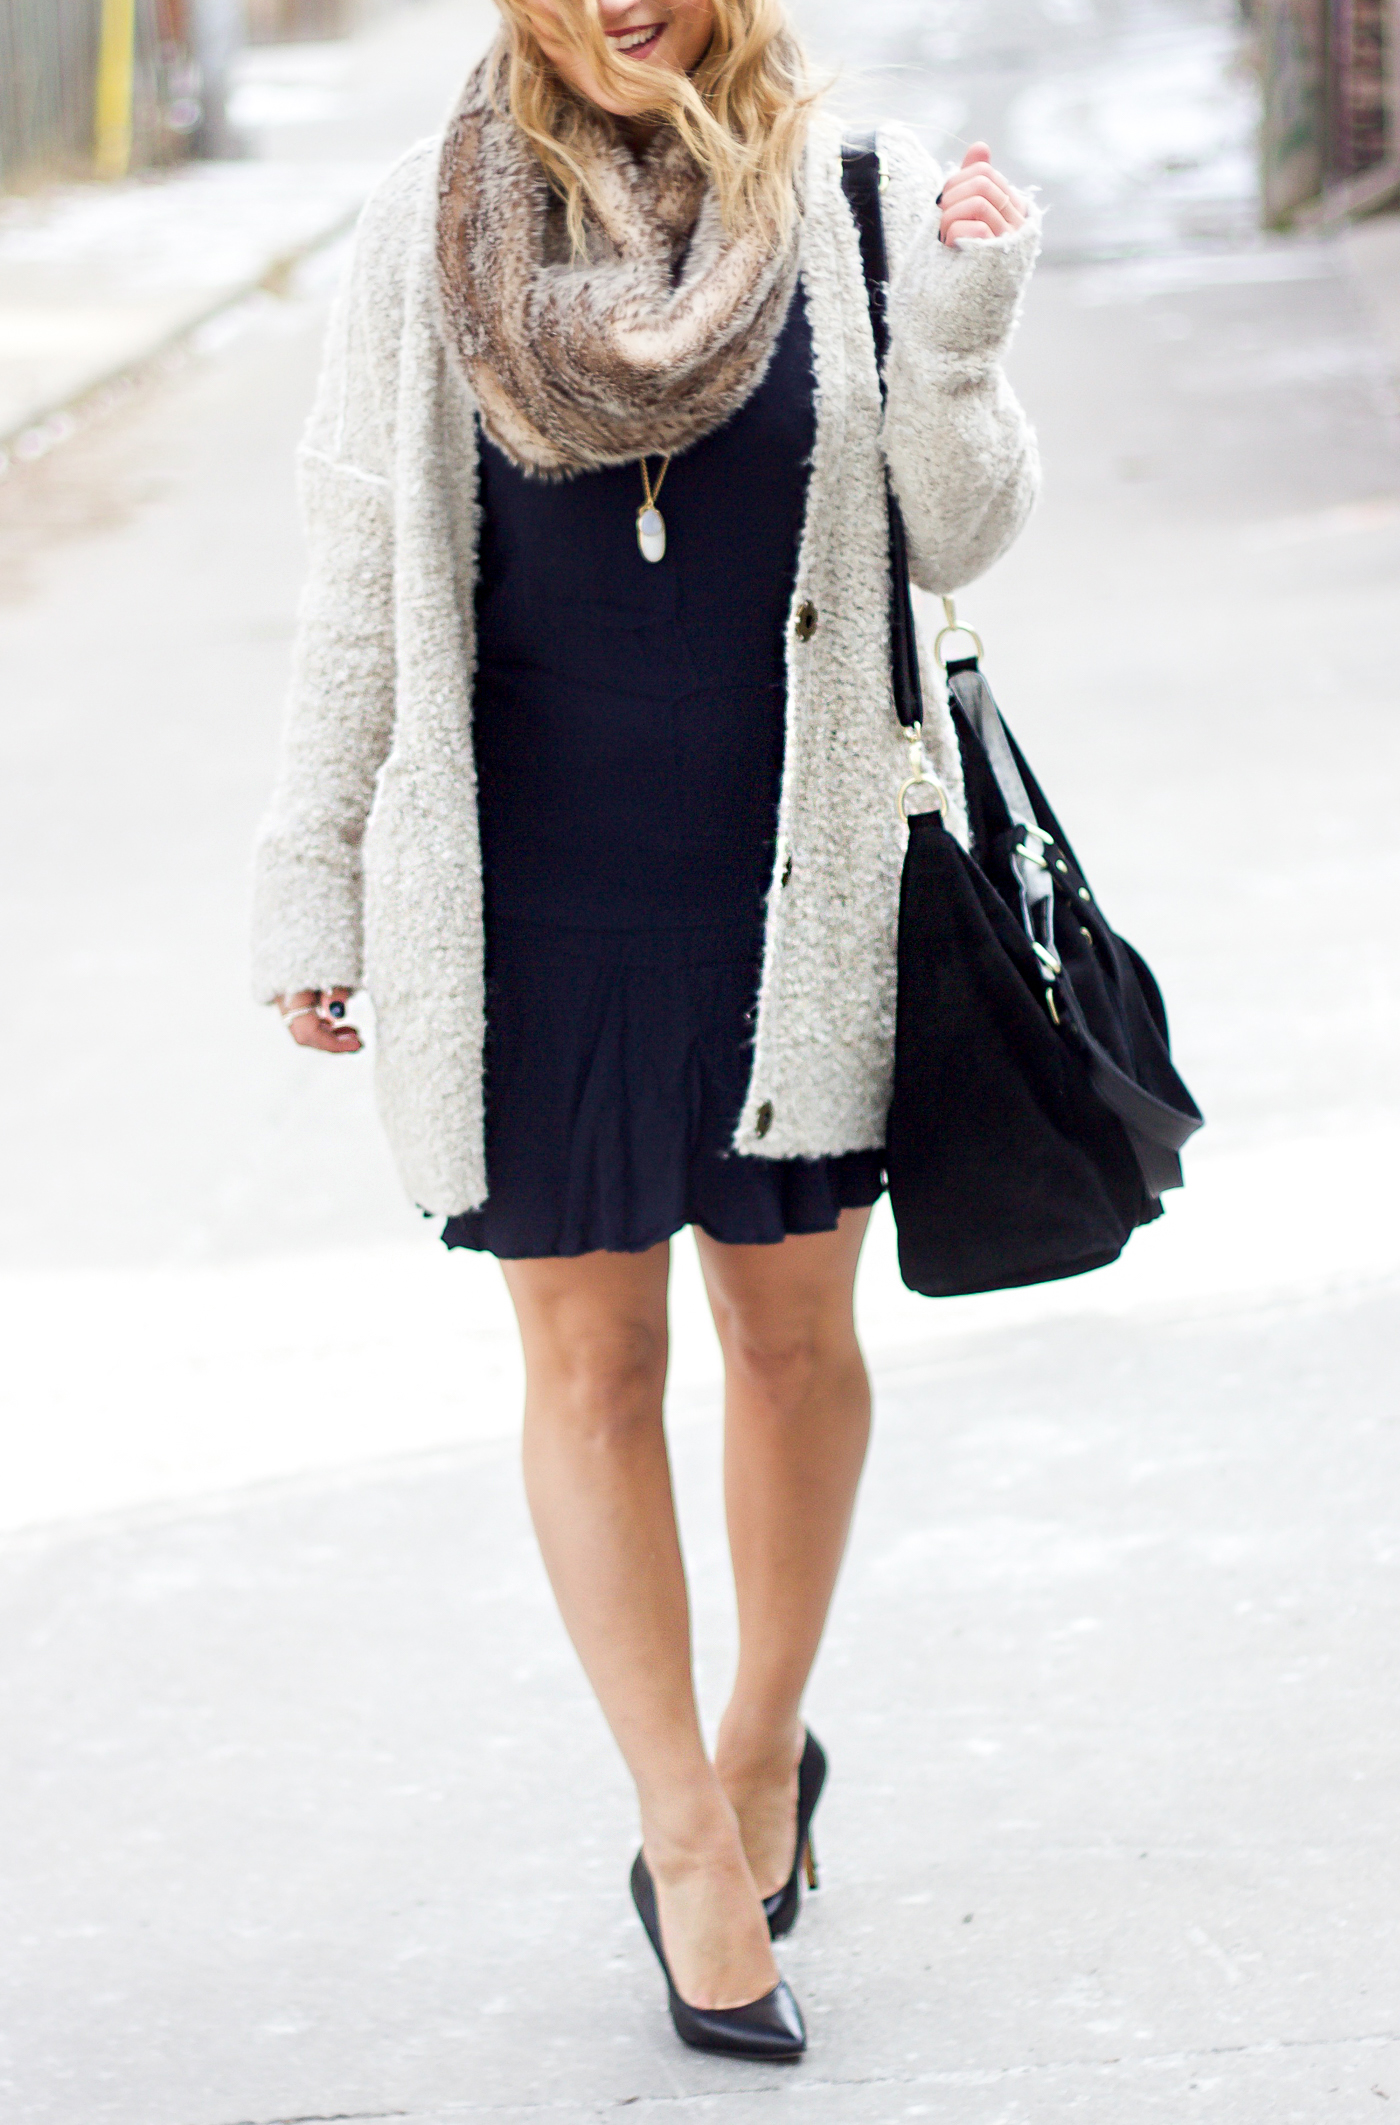 Gap dress paired with an oversized Free People Cardigan